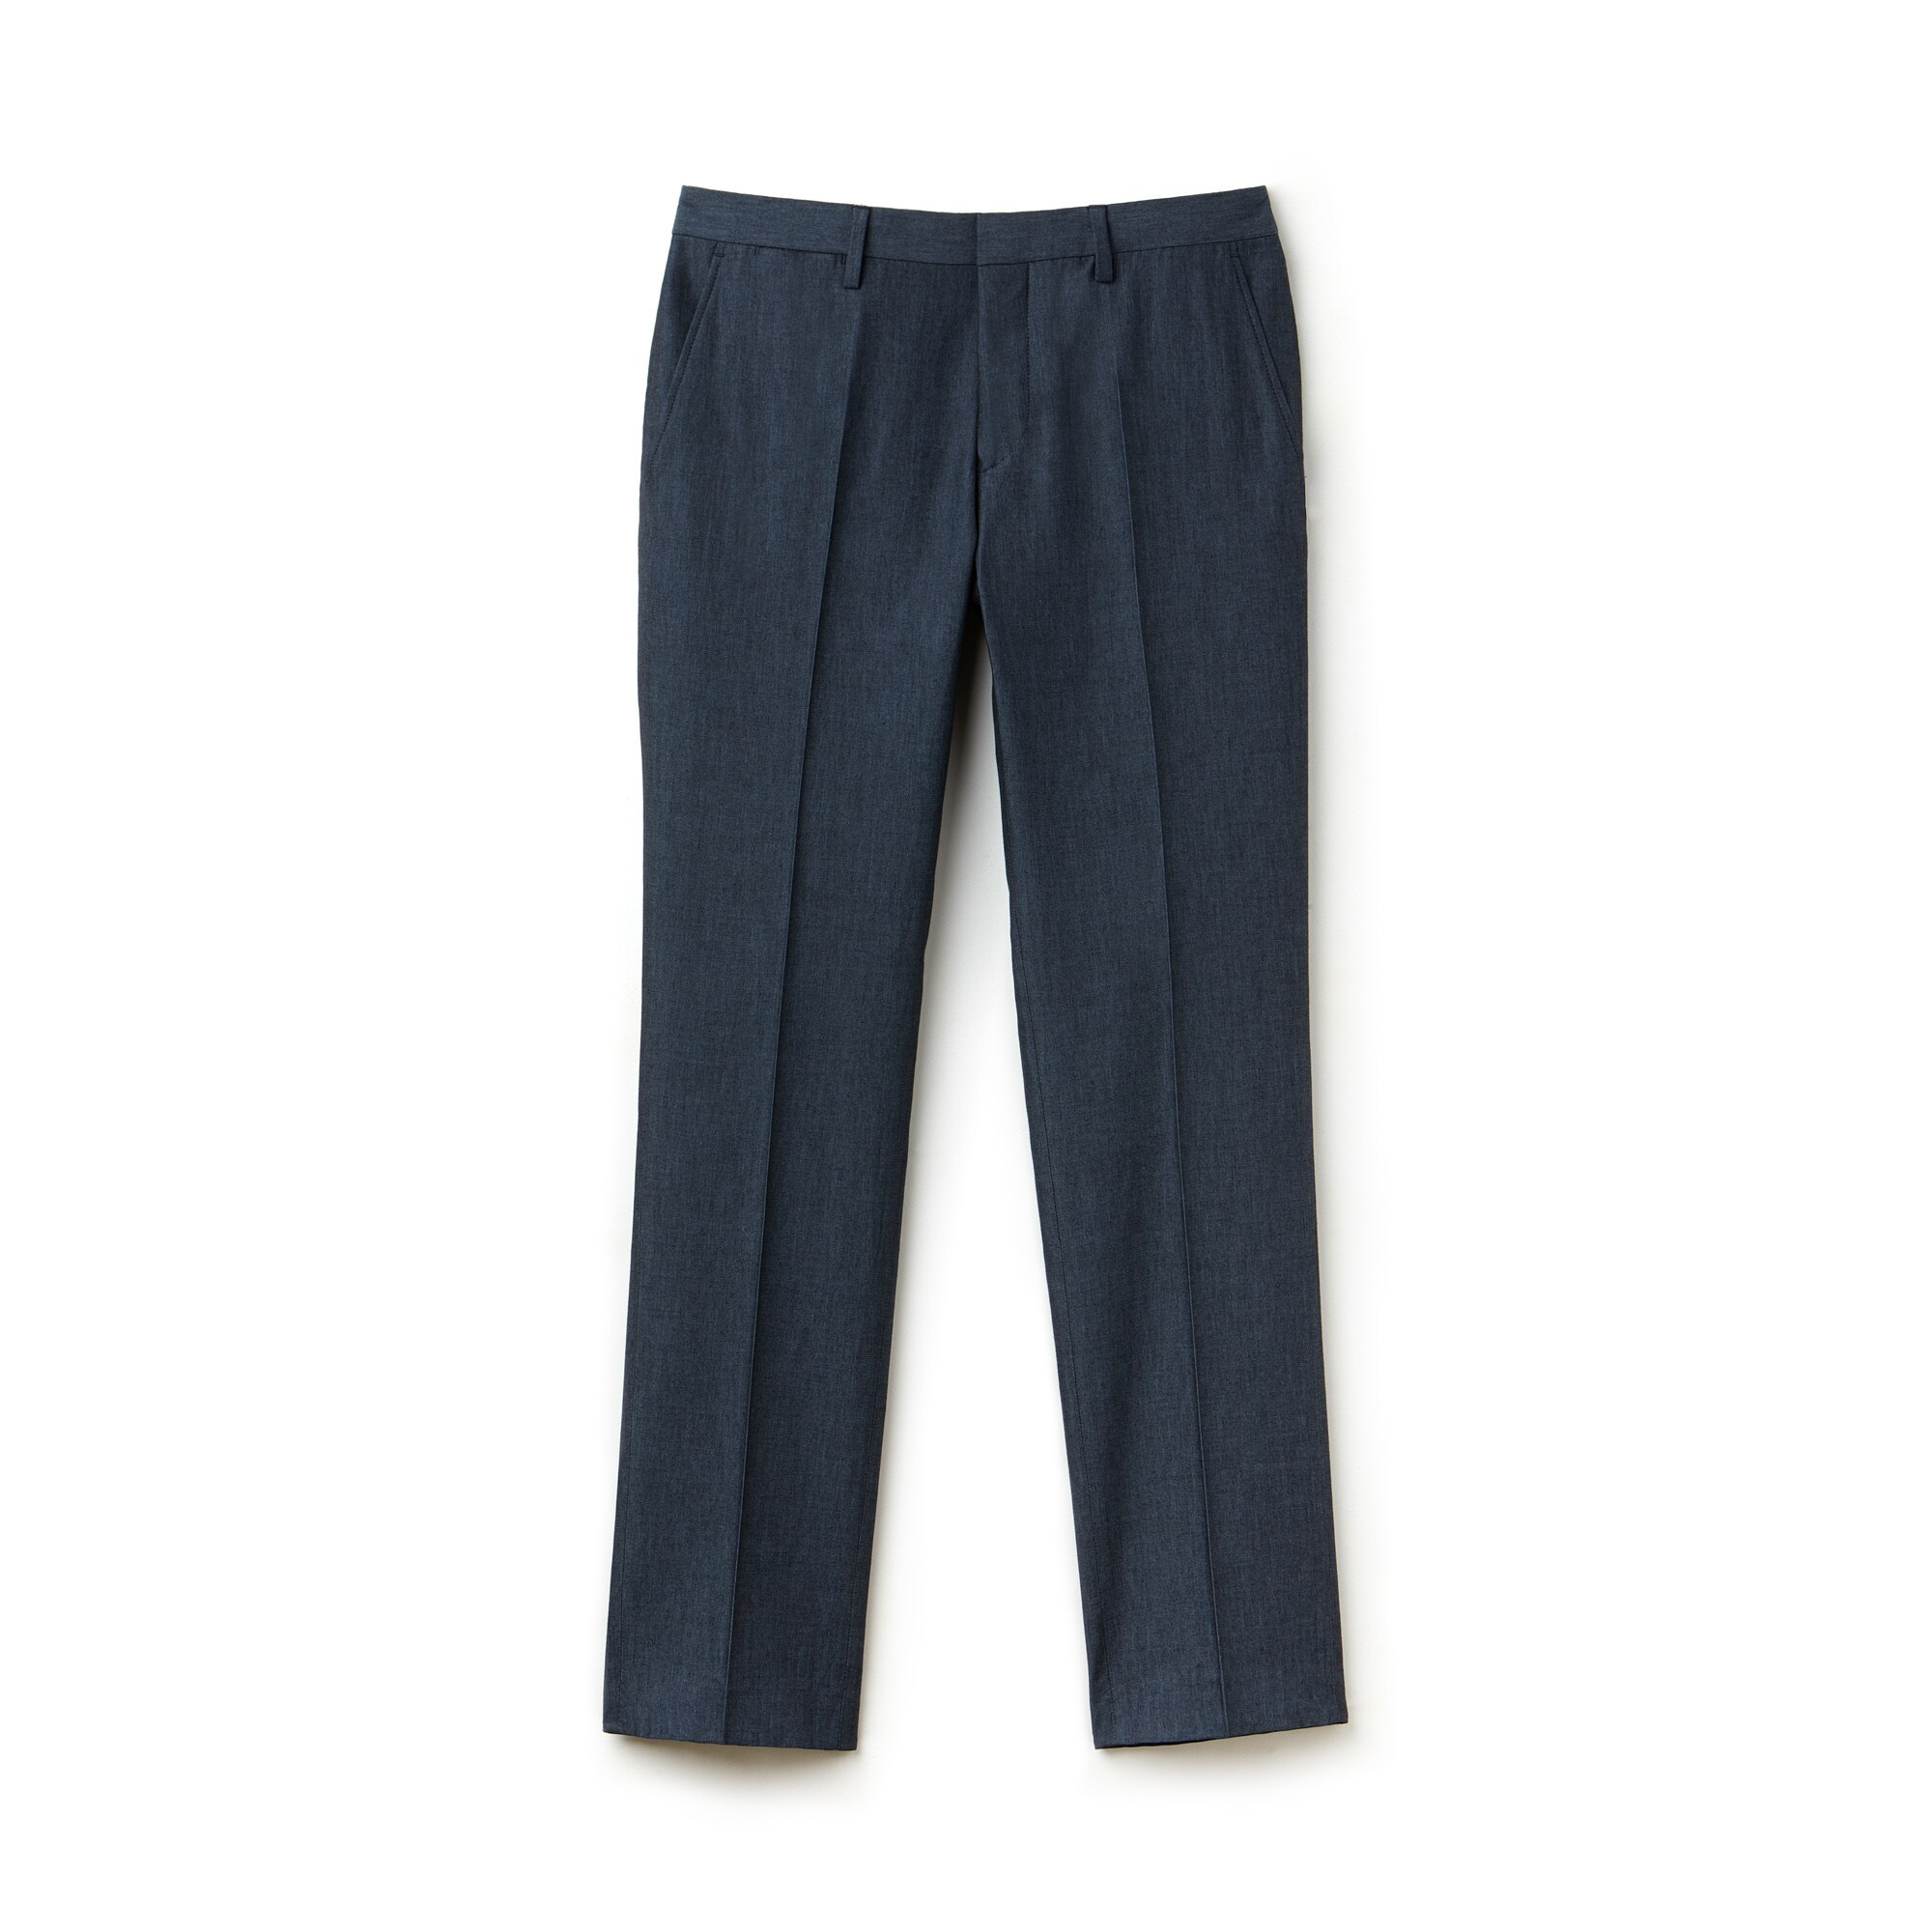 Men's Slim Fit Thick Cotton And Linen Canvas Pleated Chino Pants